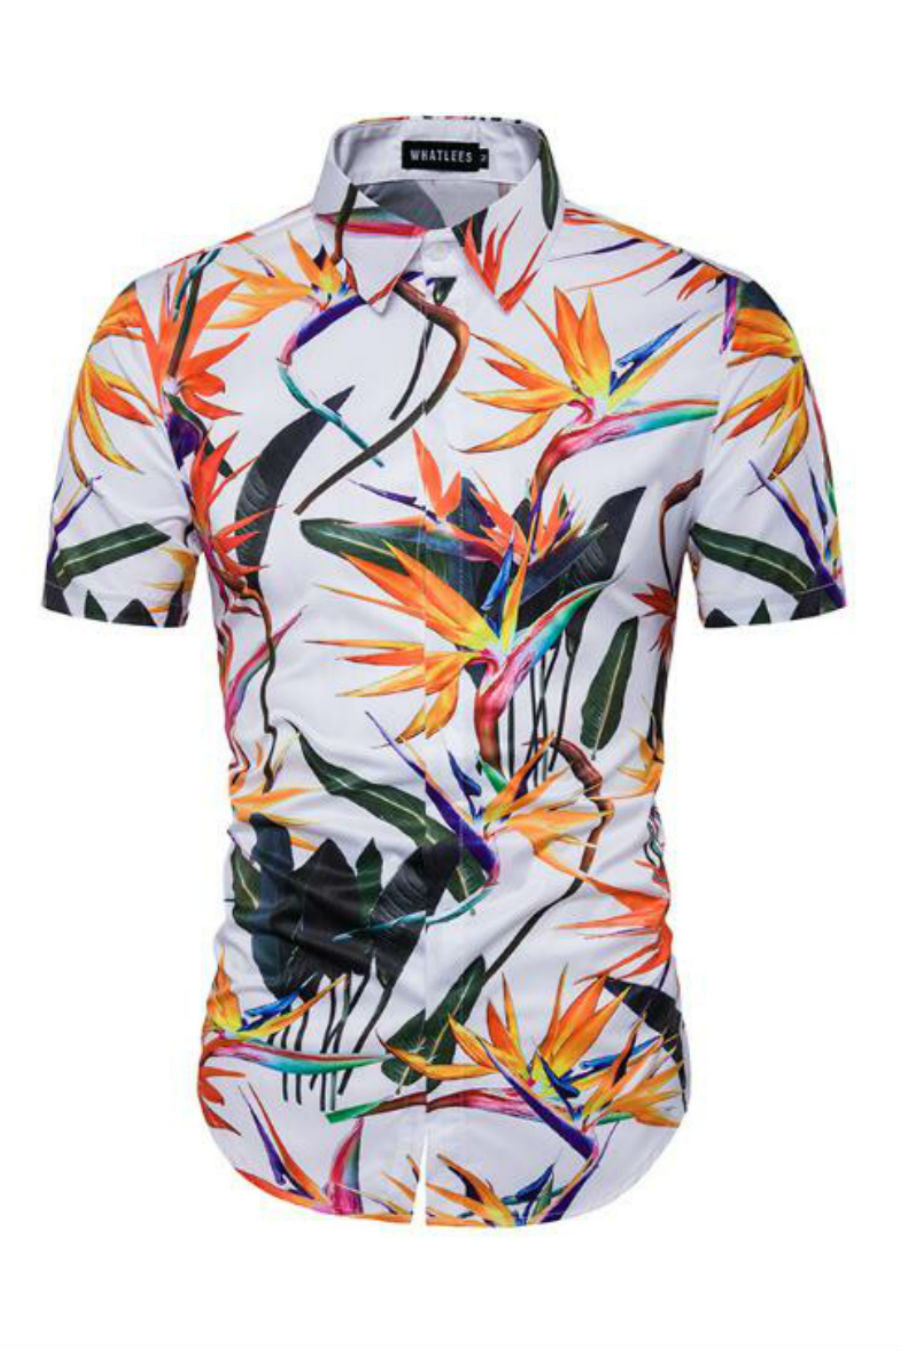 Vintage Printed Short-Sleeved Shirt